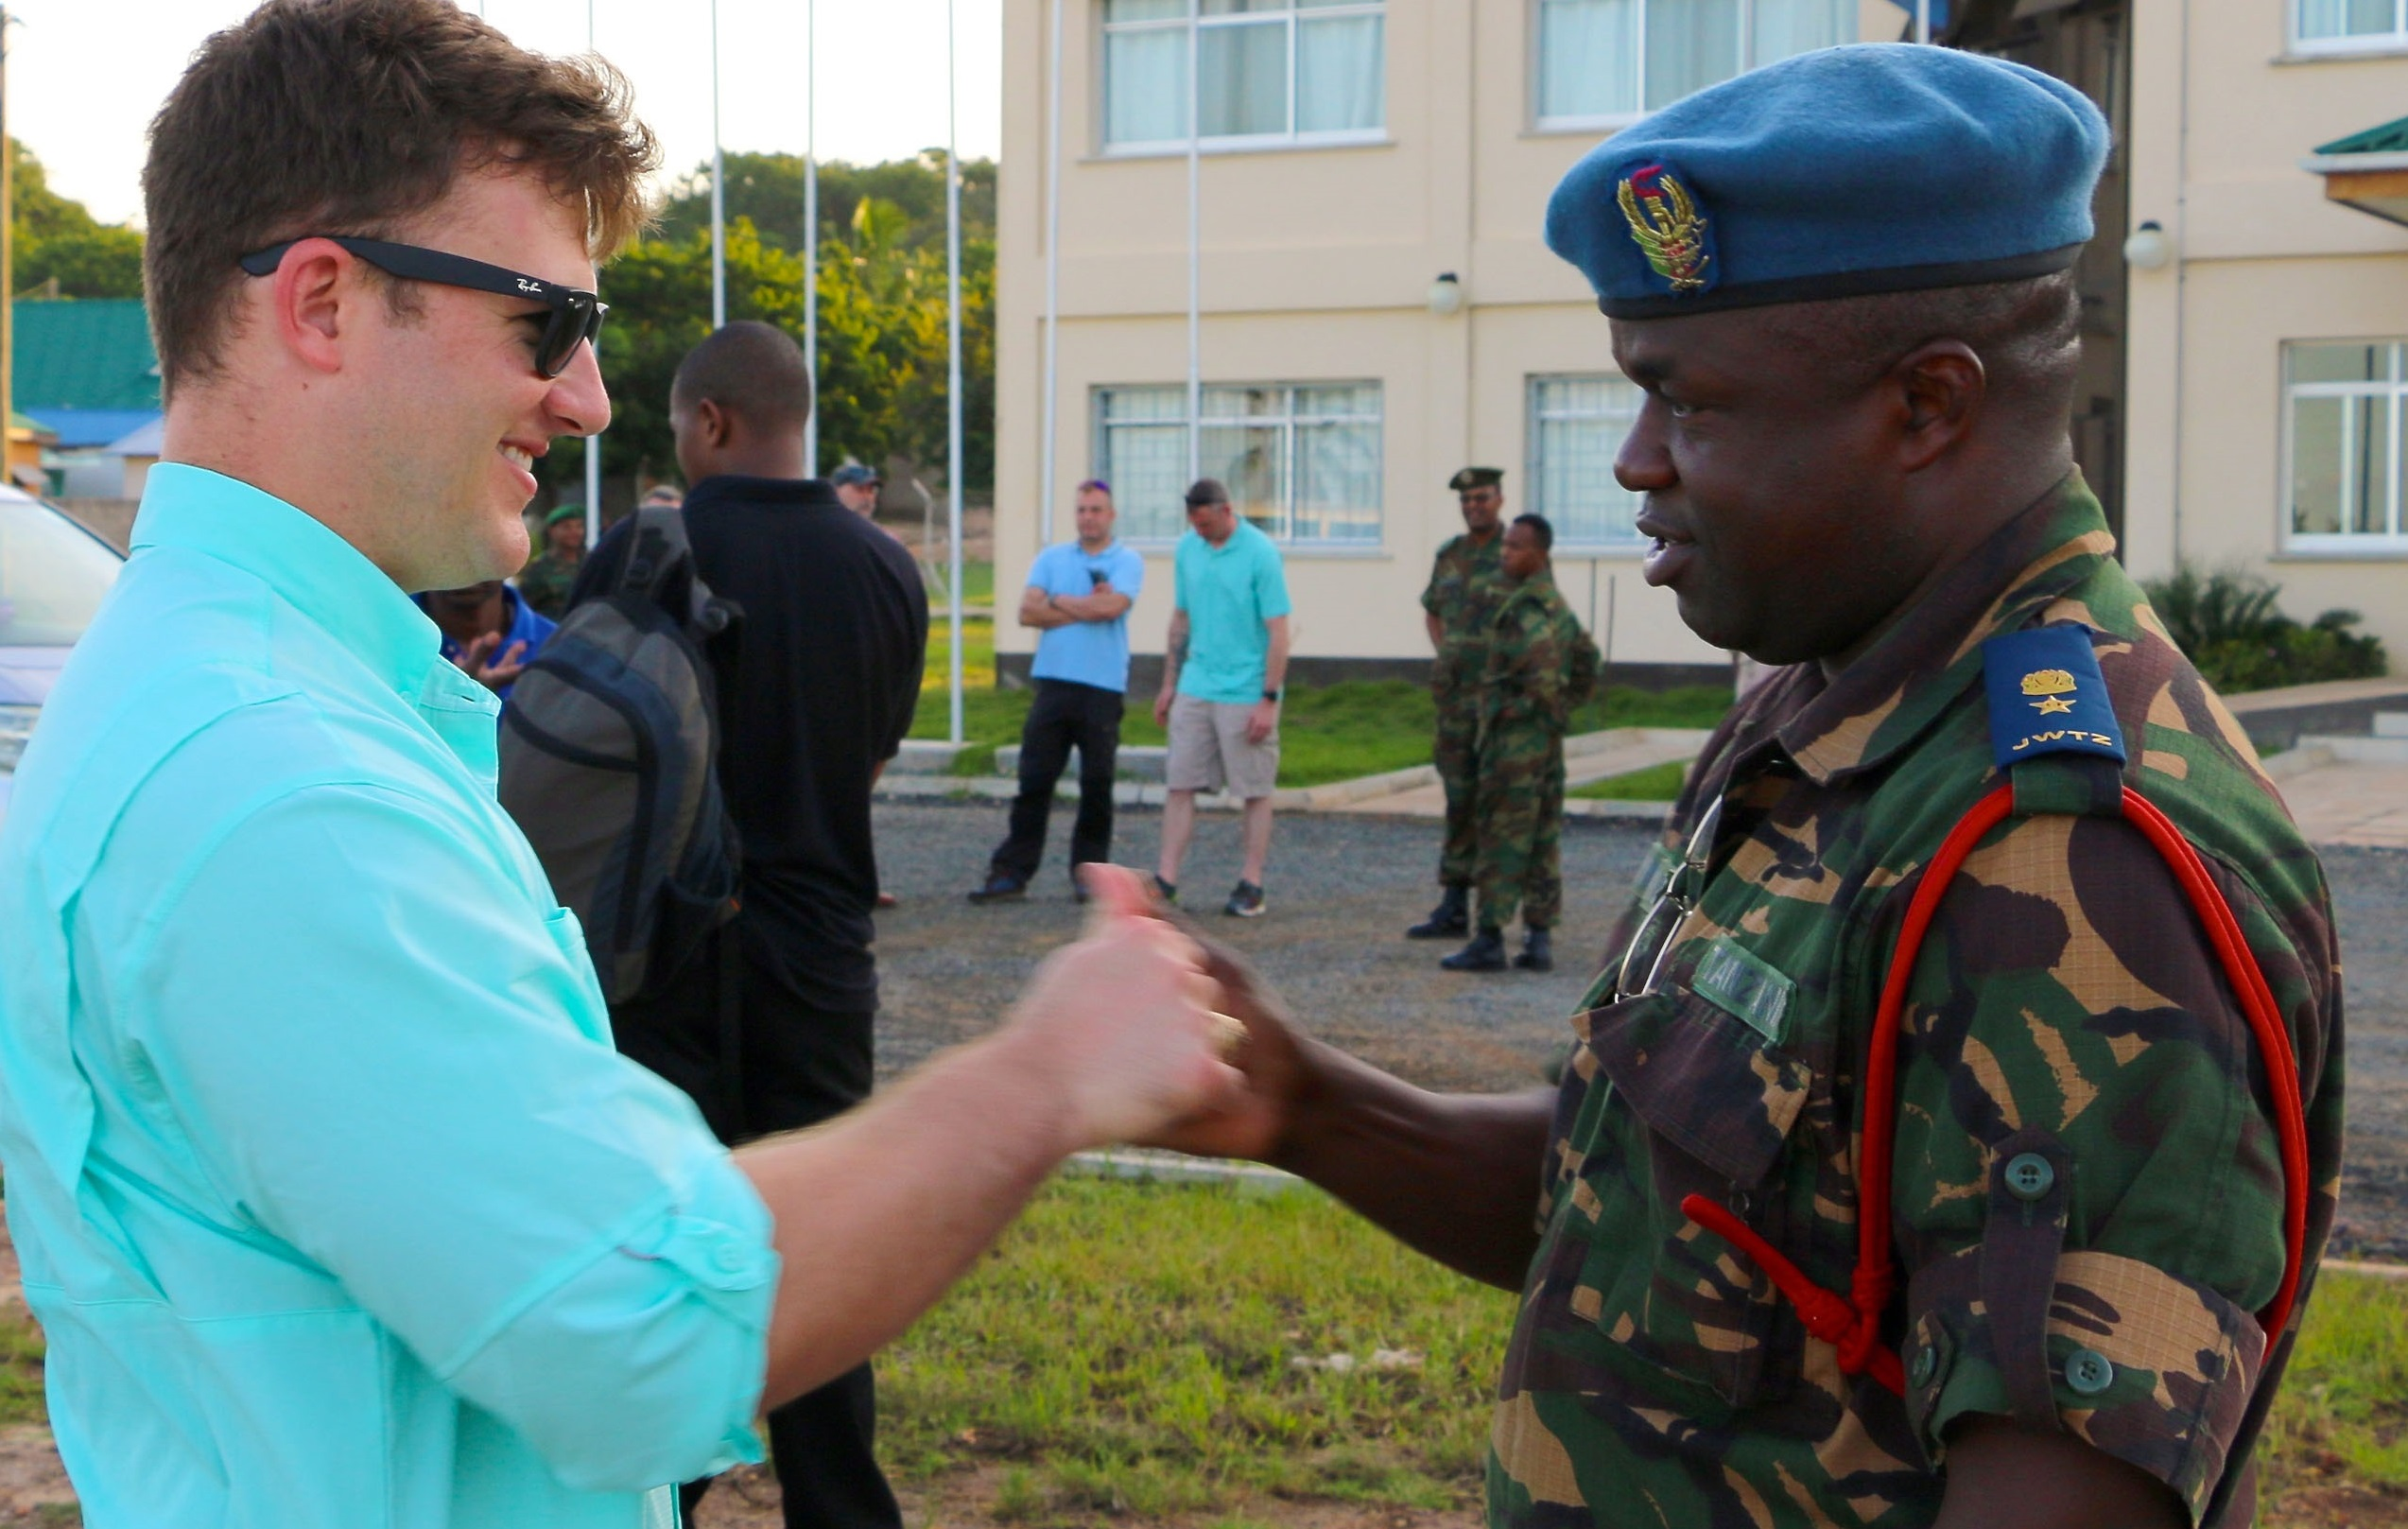 Tanzanian People's Defense Force Lt. Col. Hozza teaches a popular Tanzanian handshake to Capt. Bryan Neal, operations planner for 1st Battalion, 9th Field Artillery Regiment, 2nd Brigade Combat Team, 3rd Infantry Division, during the exercise Eastern Accord 2016 final planning event site visit to the Tanzanian Peacekeeping Training Center in Dar es Salaam, Tanzania, May 3. Soldiers of 1-9 FA are supporting EA 2016 this summer as part of the regionally allocated force for U.S. Army Africa and U.S. Africa Command. (U.S. Army Africa photo by Capt. Jarrod Morris)